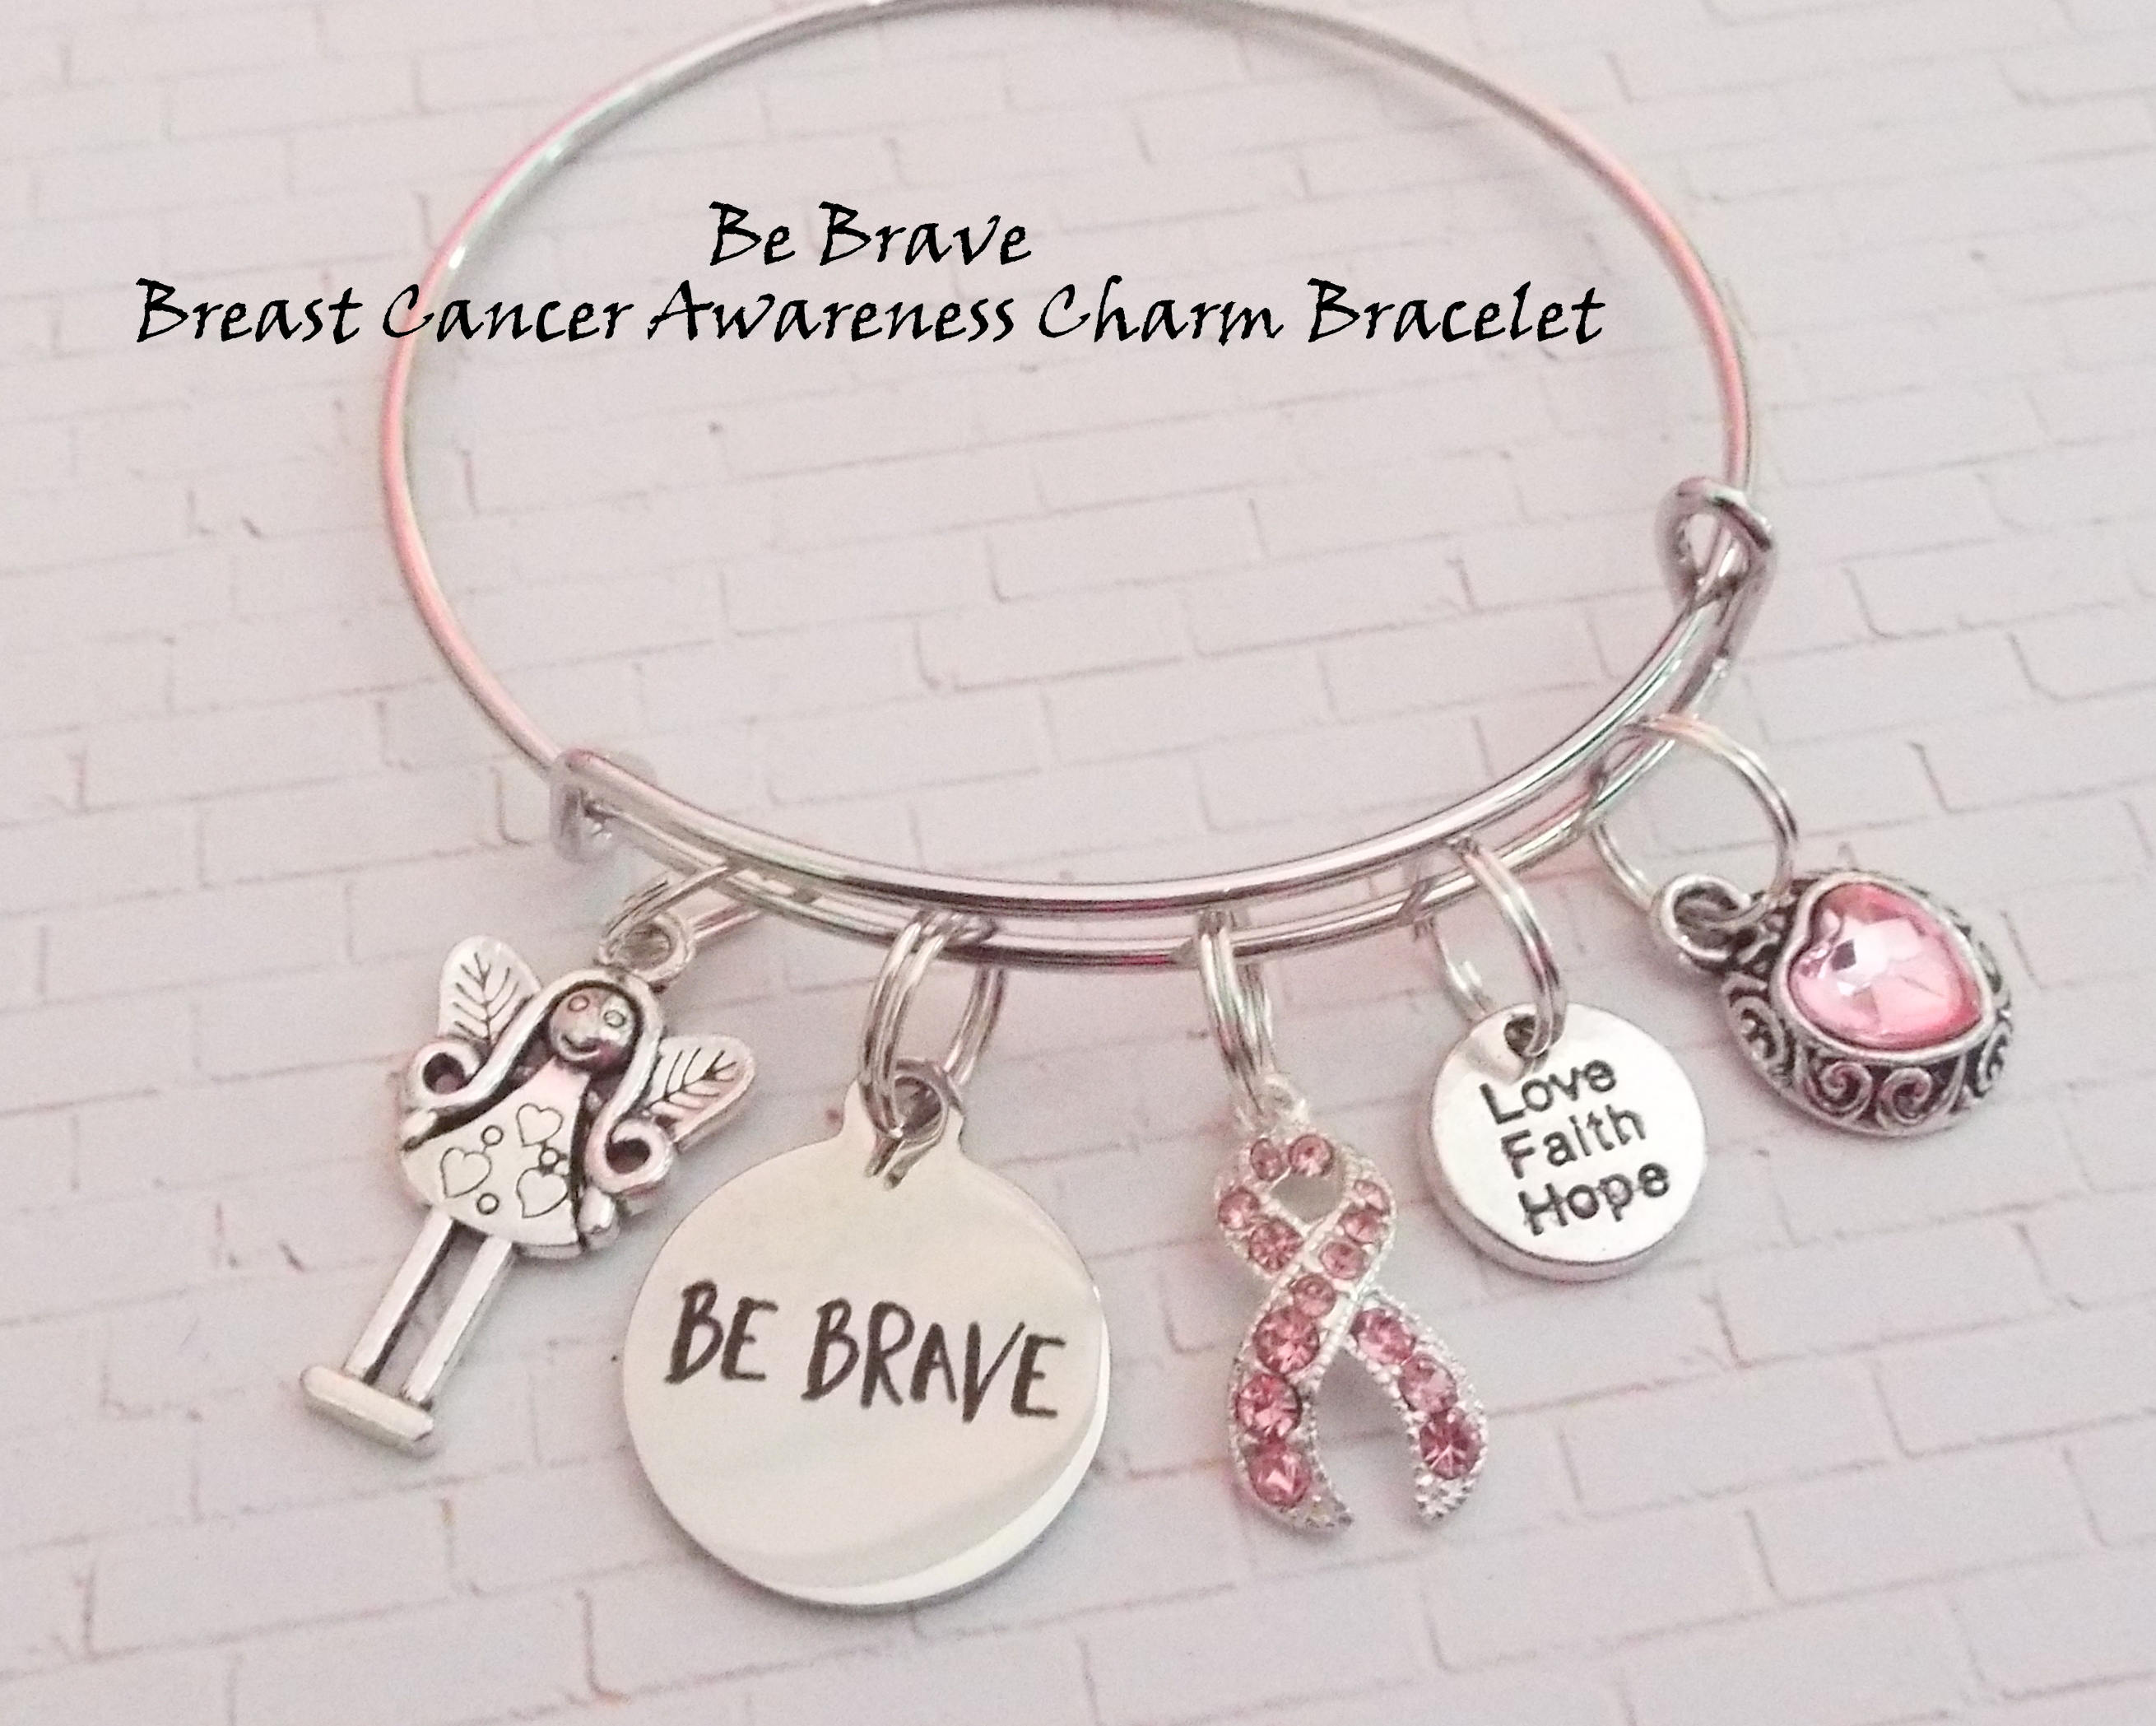 survivor cuffs bracelet products booby collections touched breast cancer my